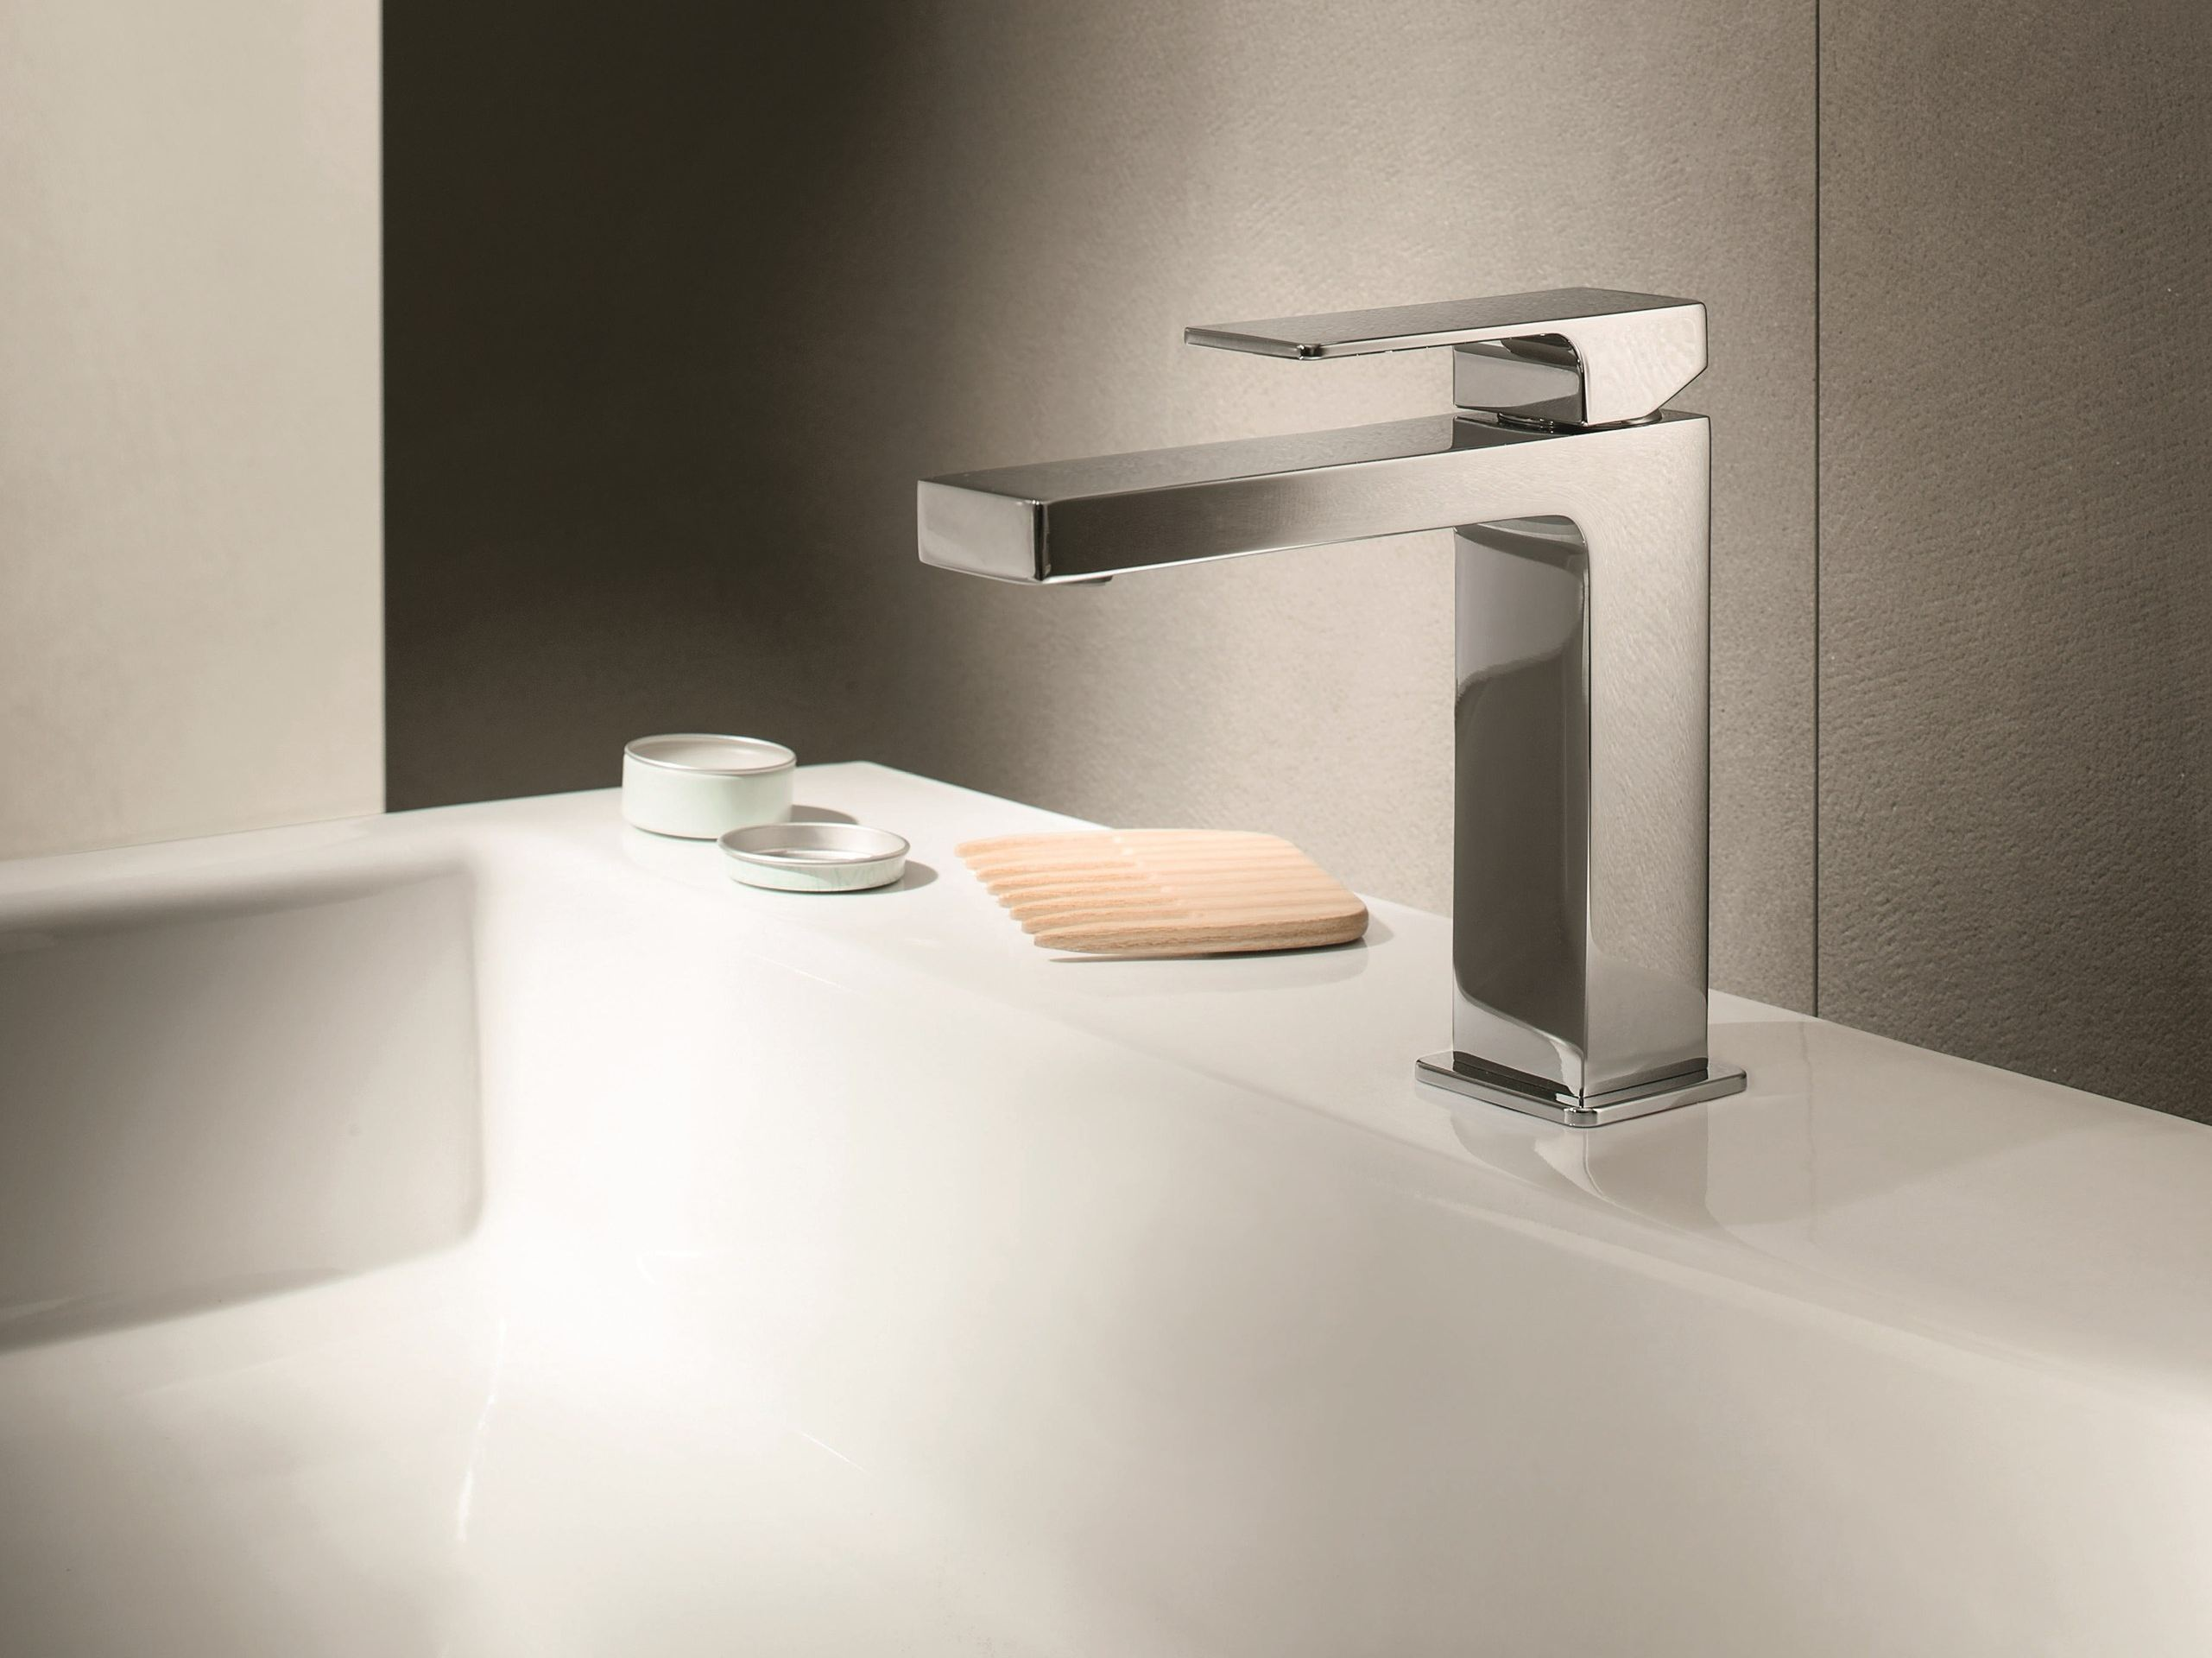 Mint countertop washbasin mixer by fantini rubinetti for Rubinetti design